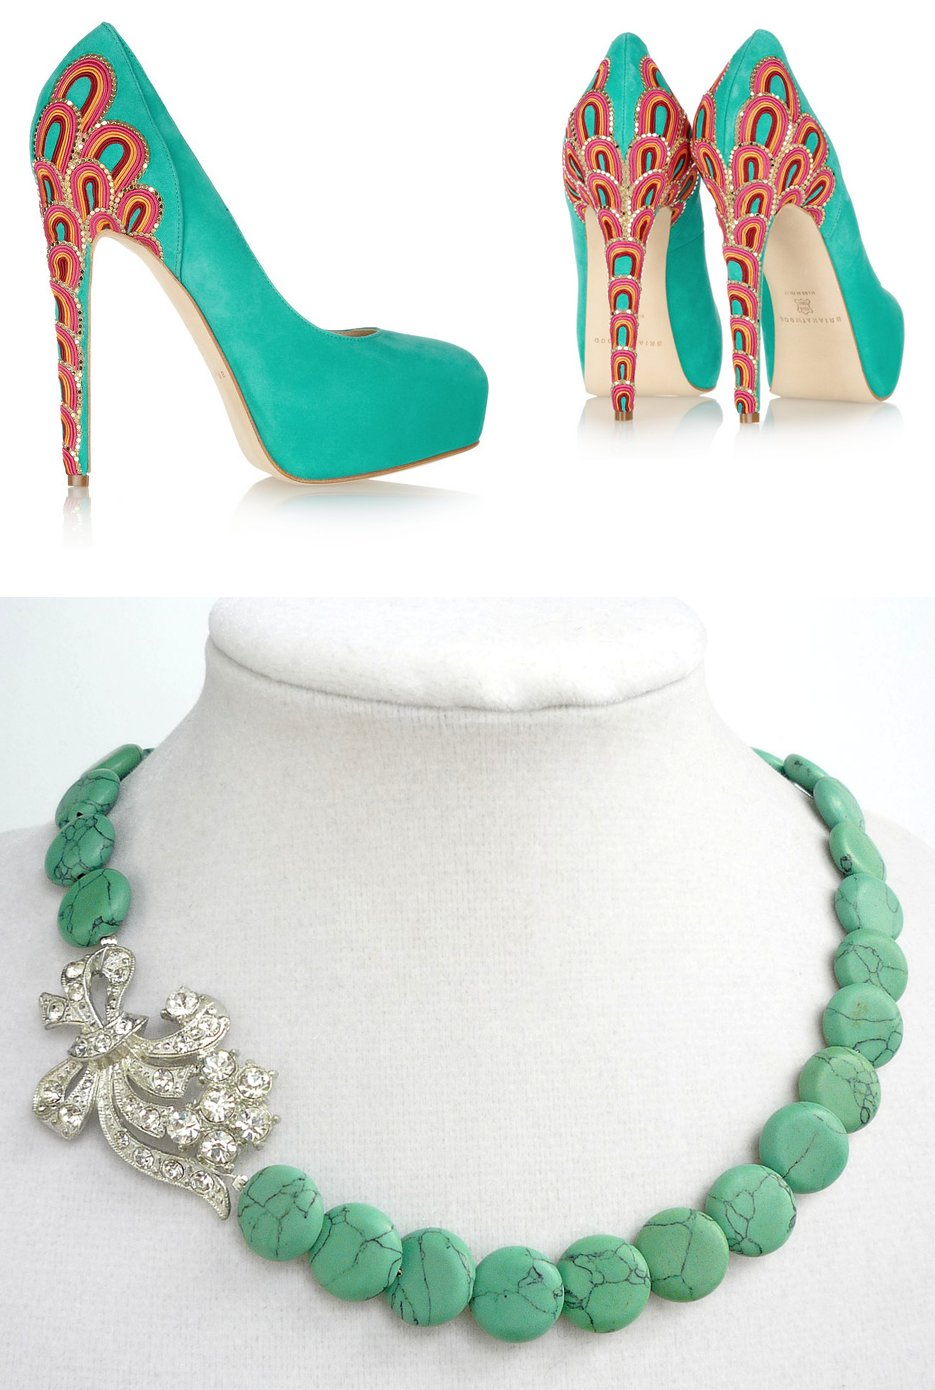 Turquoise-for-brides-something-blue-brian-atwood-heels.full